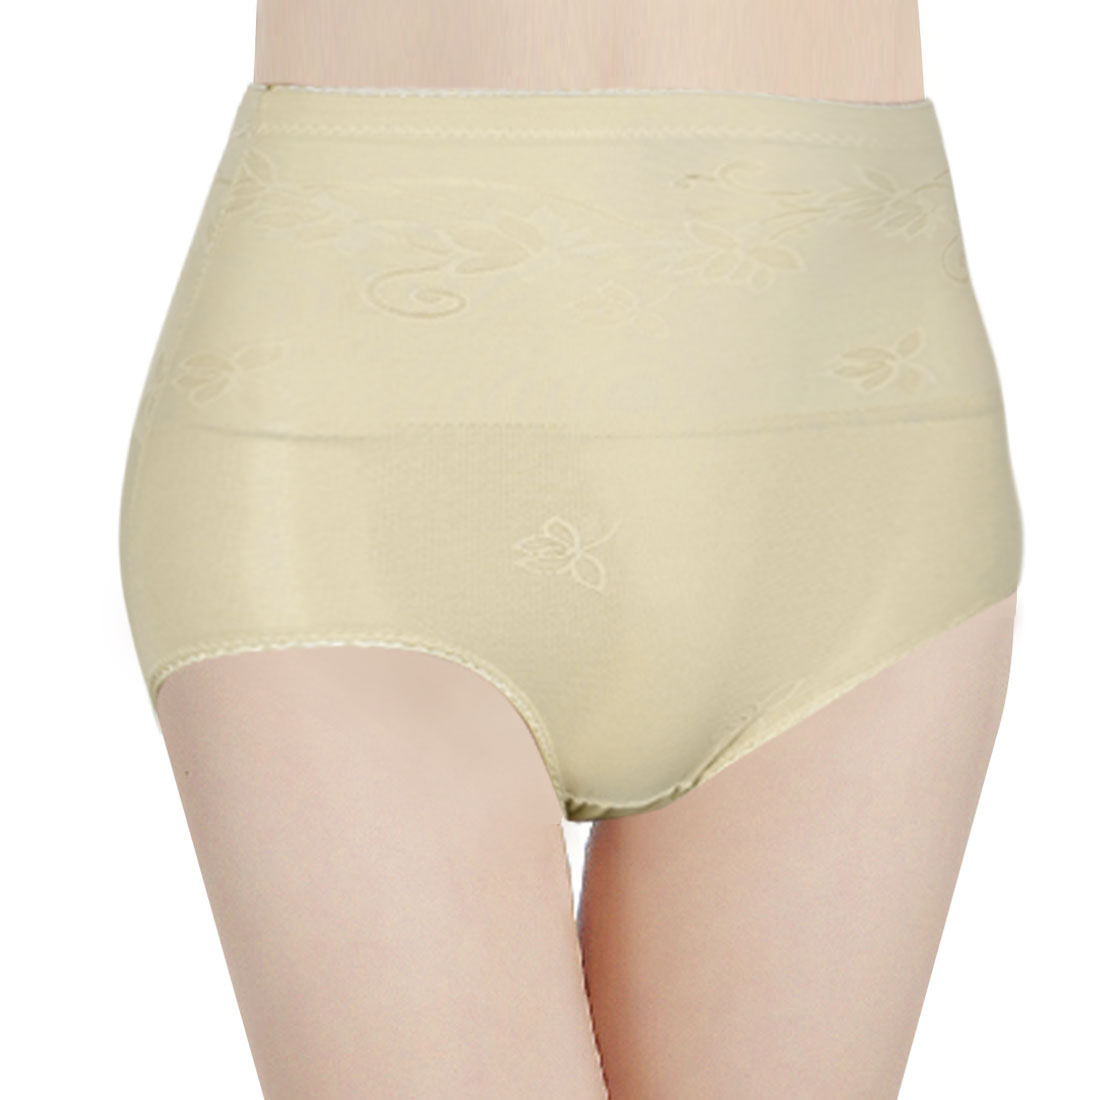 Beige Floral High Waist Elastic Mesh Hole Shorts Panties Shaper M for Woman